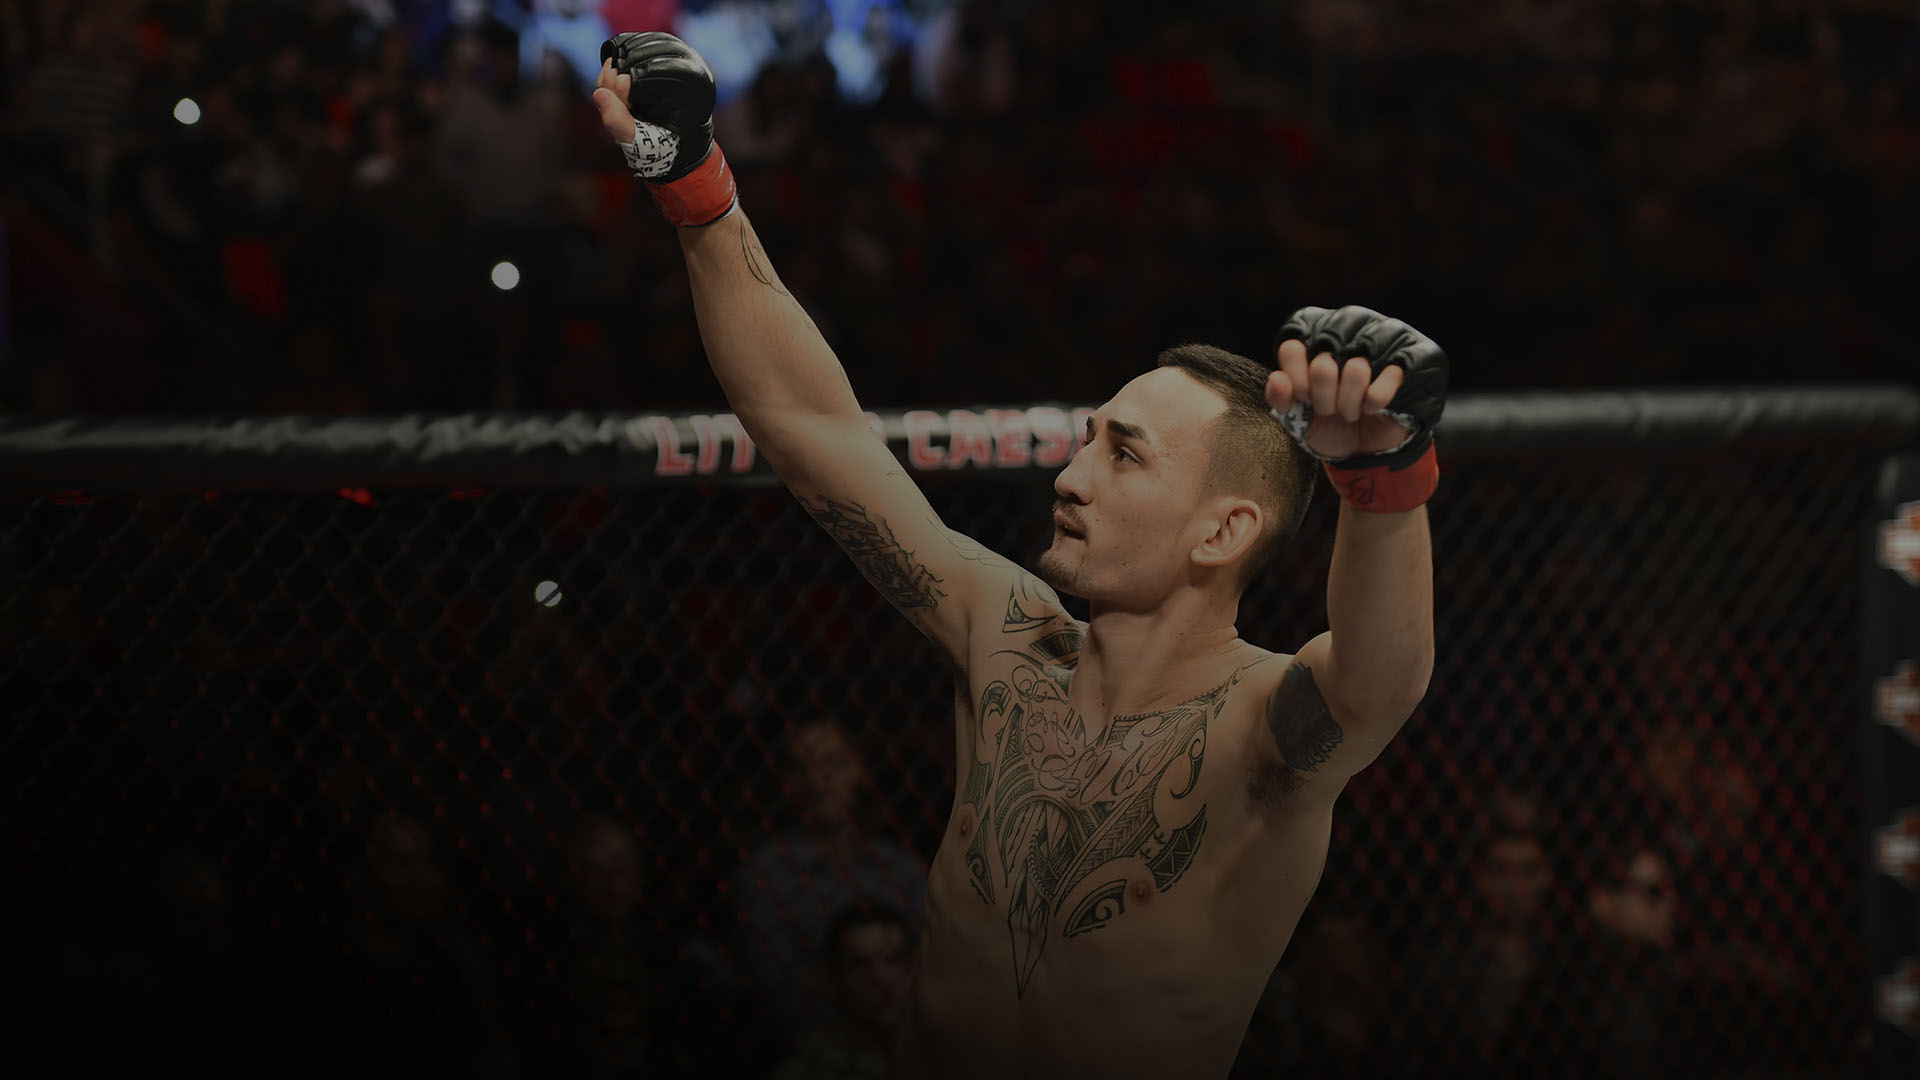 DETROIT, MI - DECEMBER 02: Max Holloway signals to the crowd as he enters the Octagon prior to facing Jose Aldo of Brazil in their UFC featherweight championship bout during the UFC 218 event inside Little Caesars Arena on December 02, 2017 in Detroit, Michigan. (Photo by Josh Hedges/Zuffa LLC/Zuffa LLC via Getty Images)